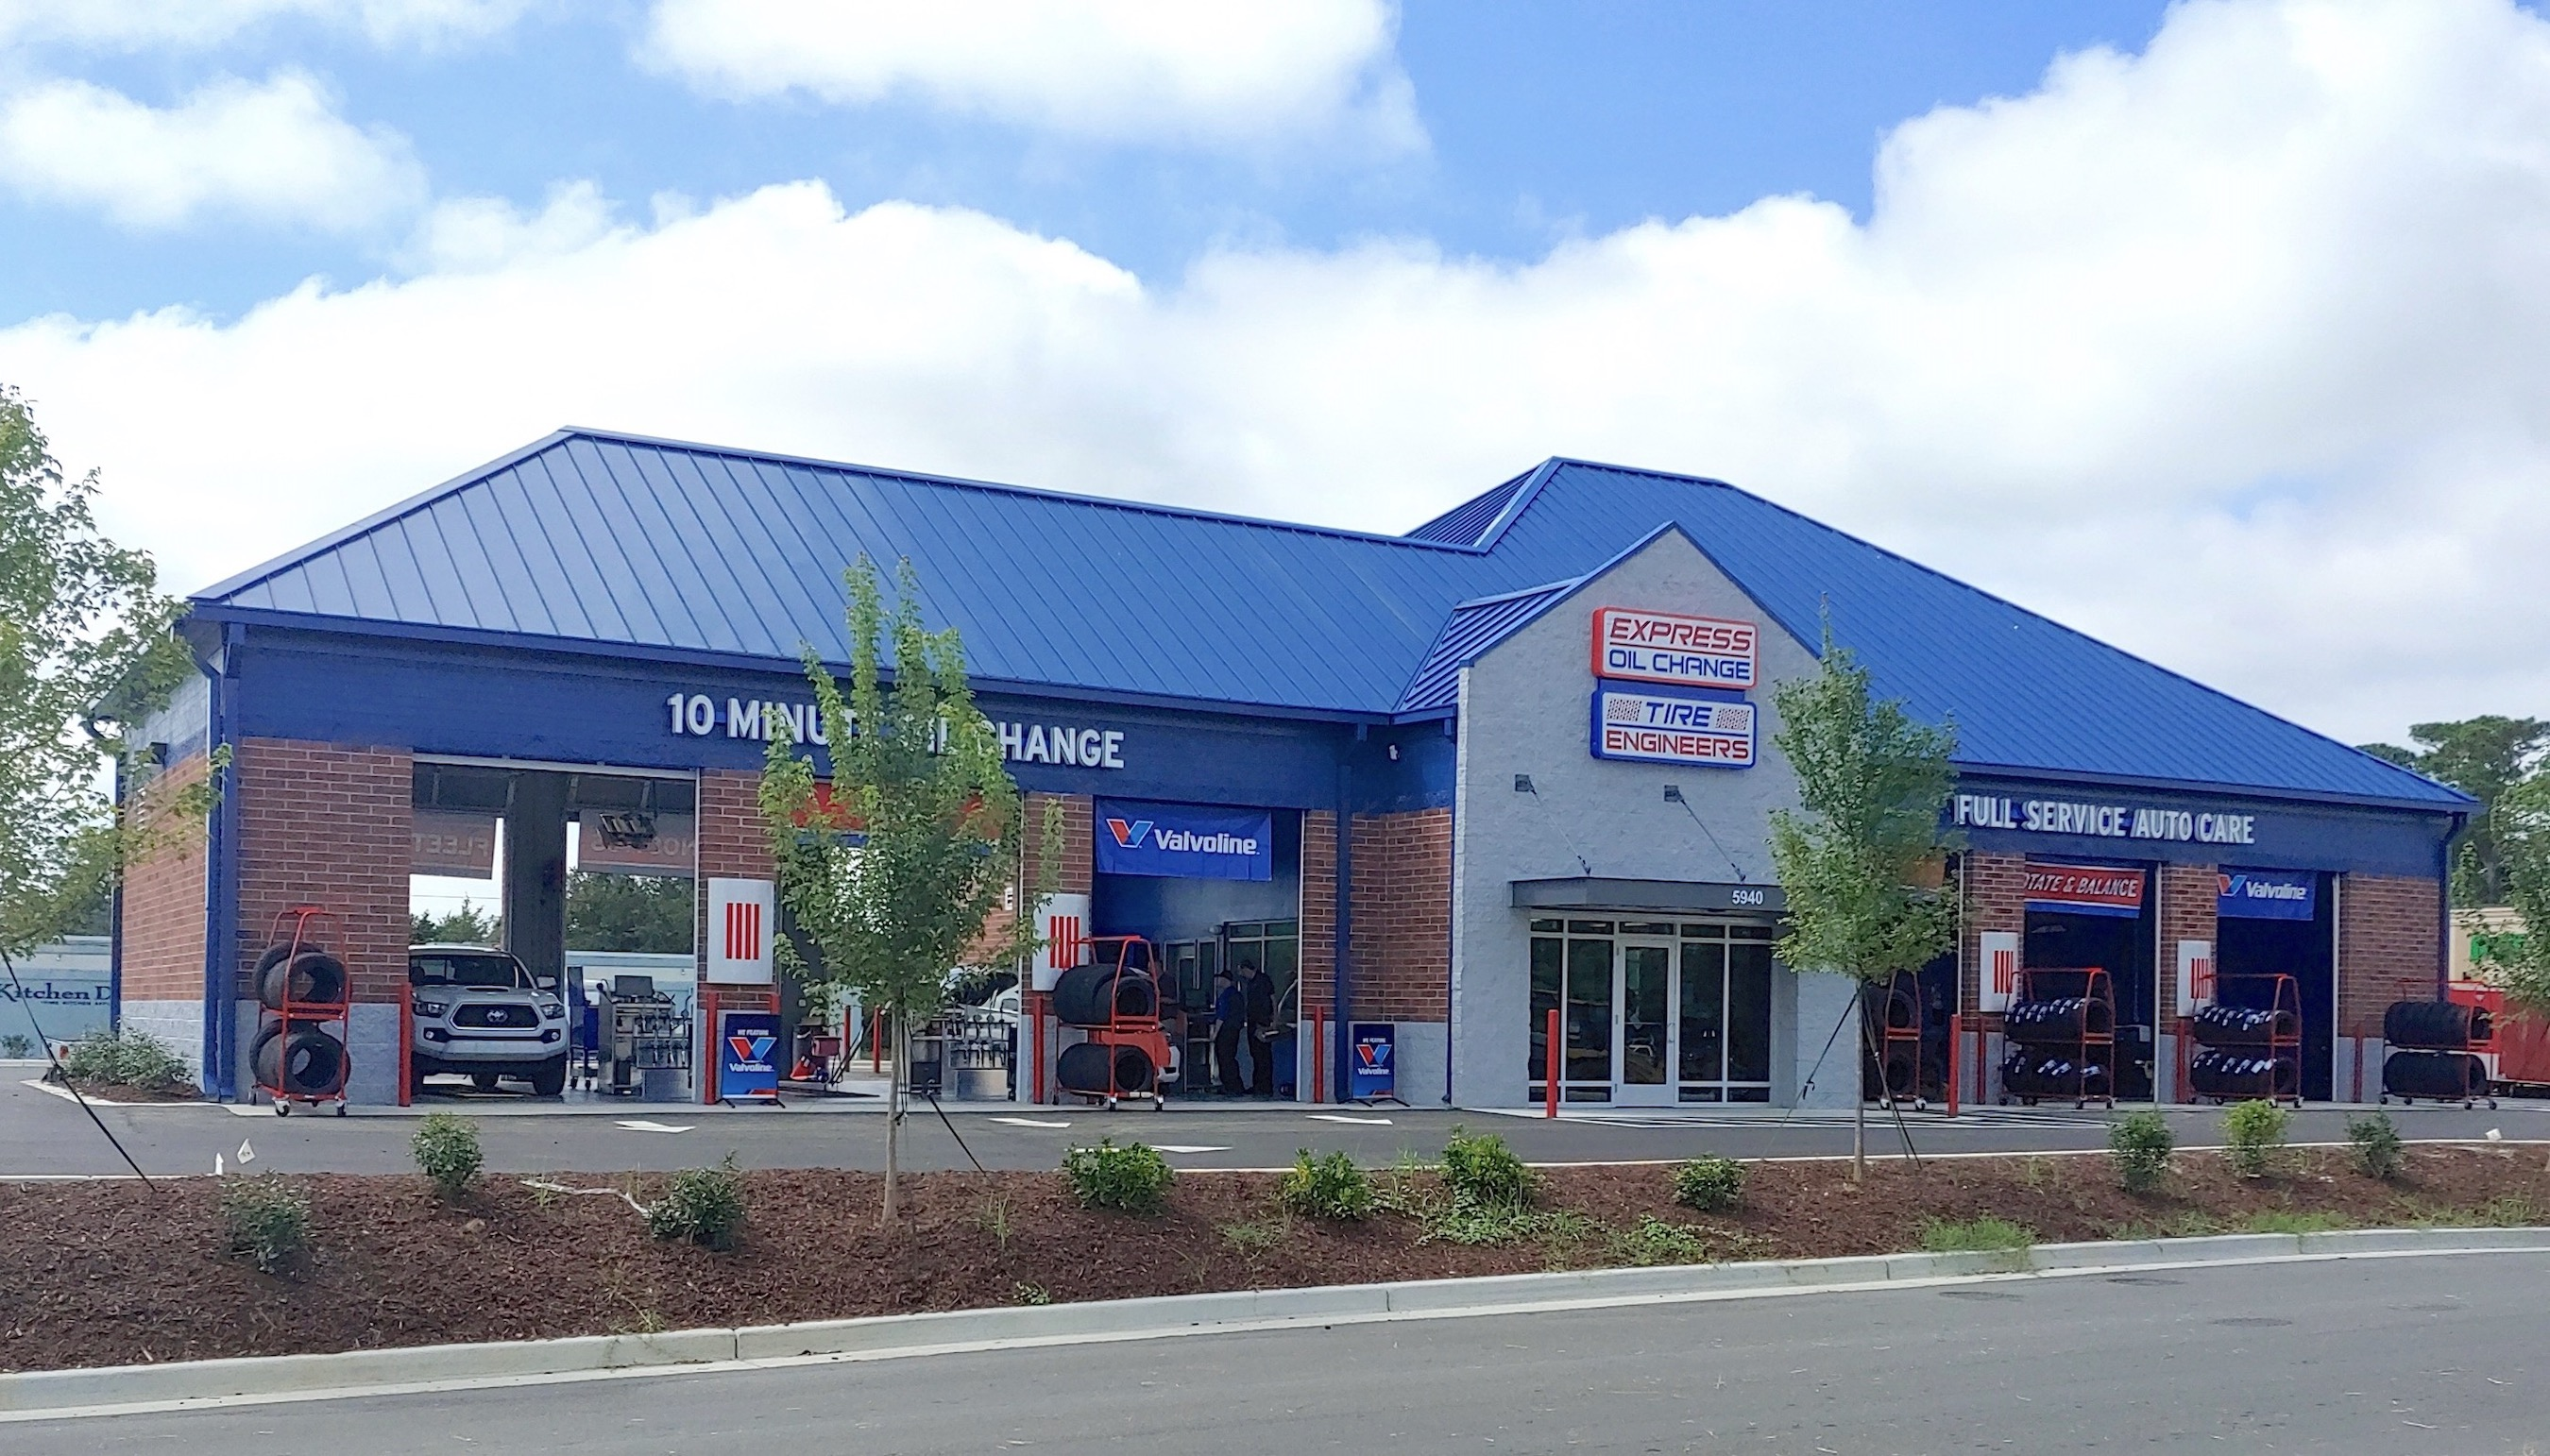 Express Oil Change & Tire Engineers at Wilmington, NC - Monkey Junction store